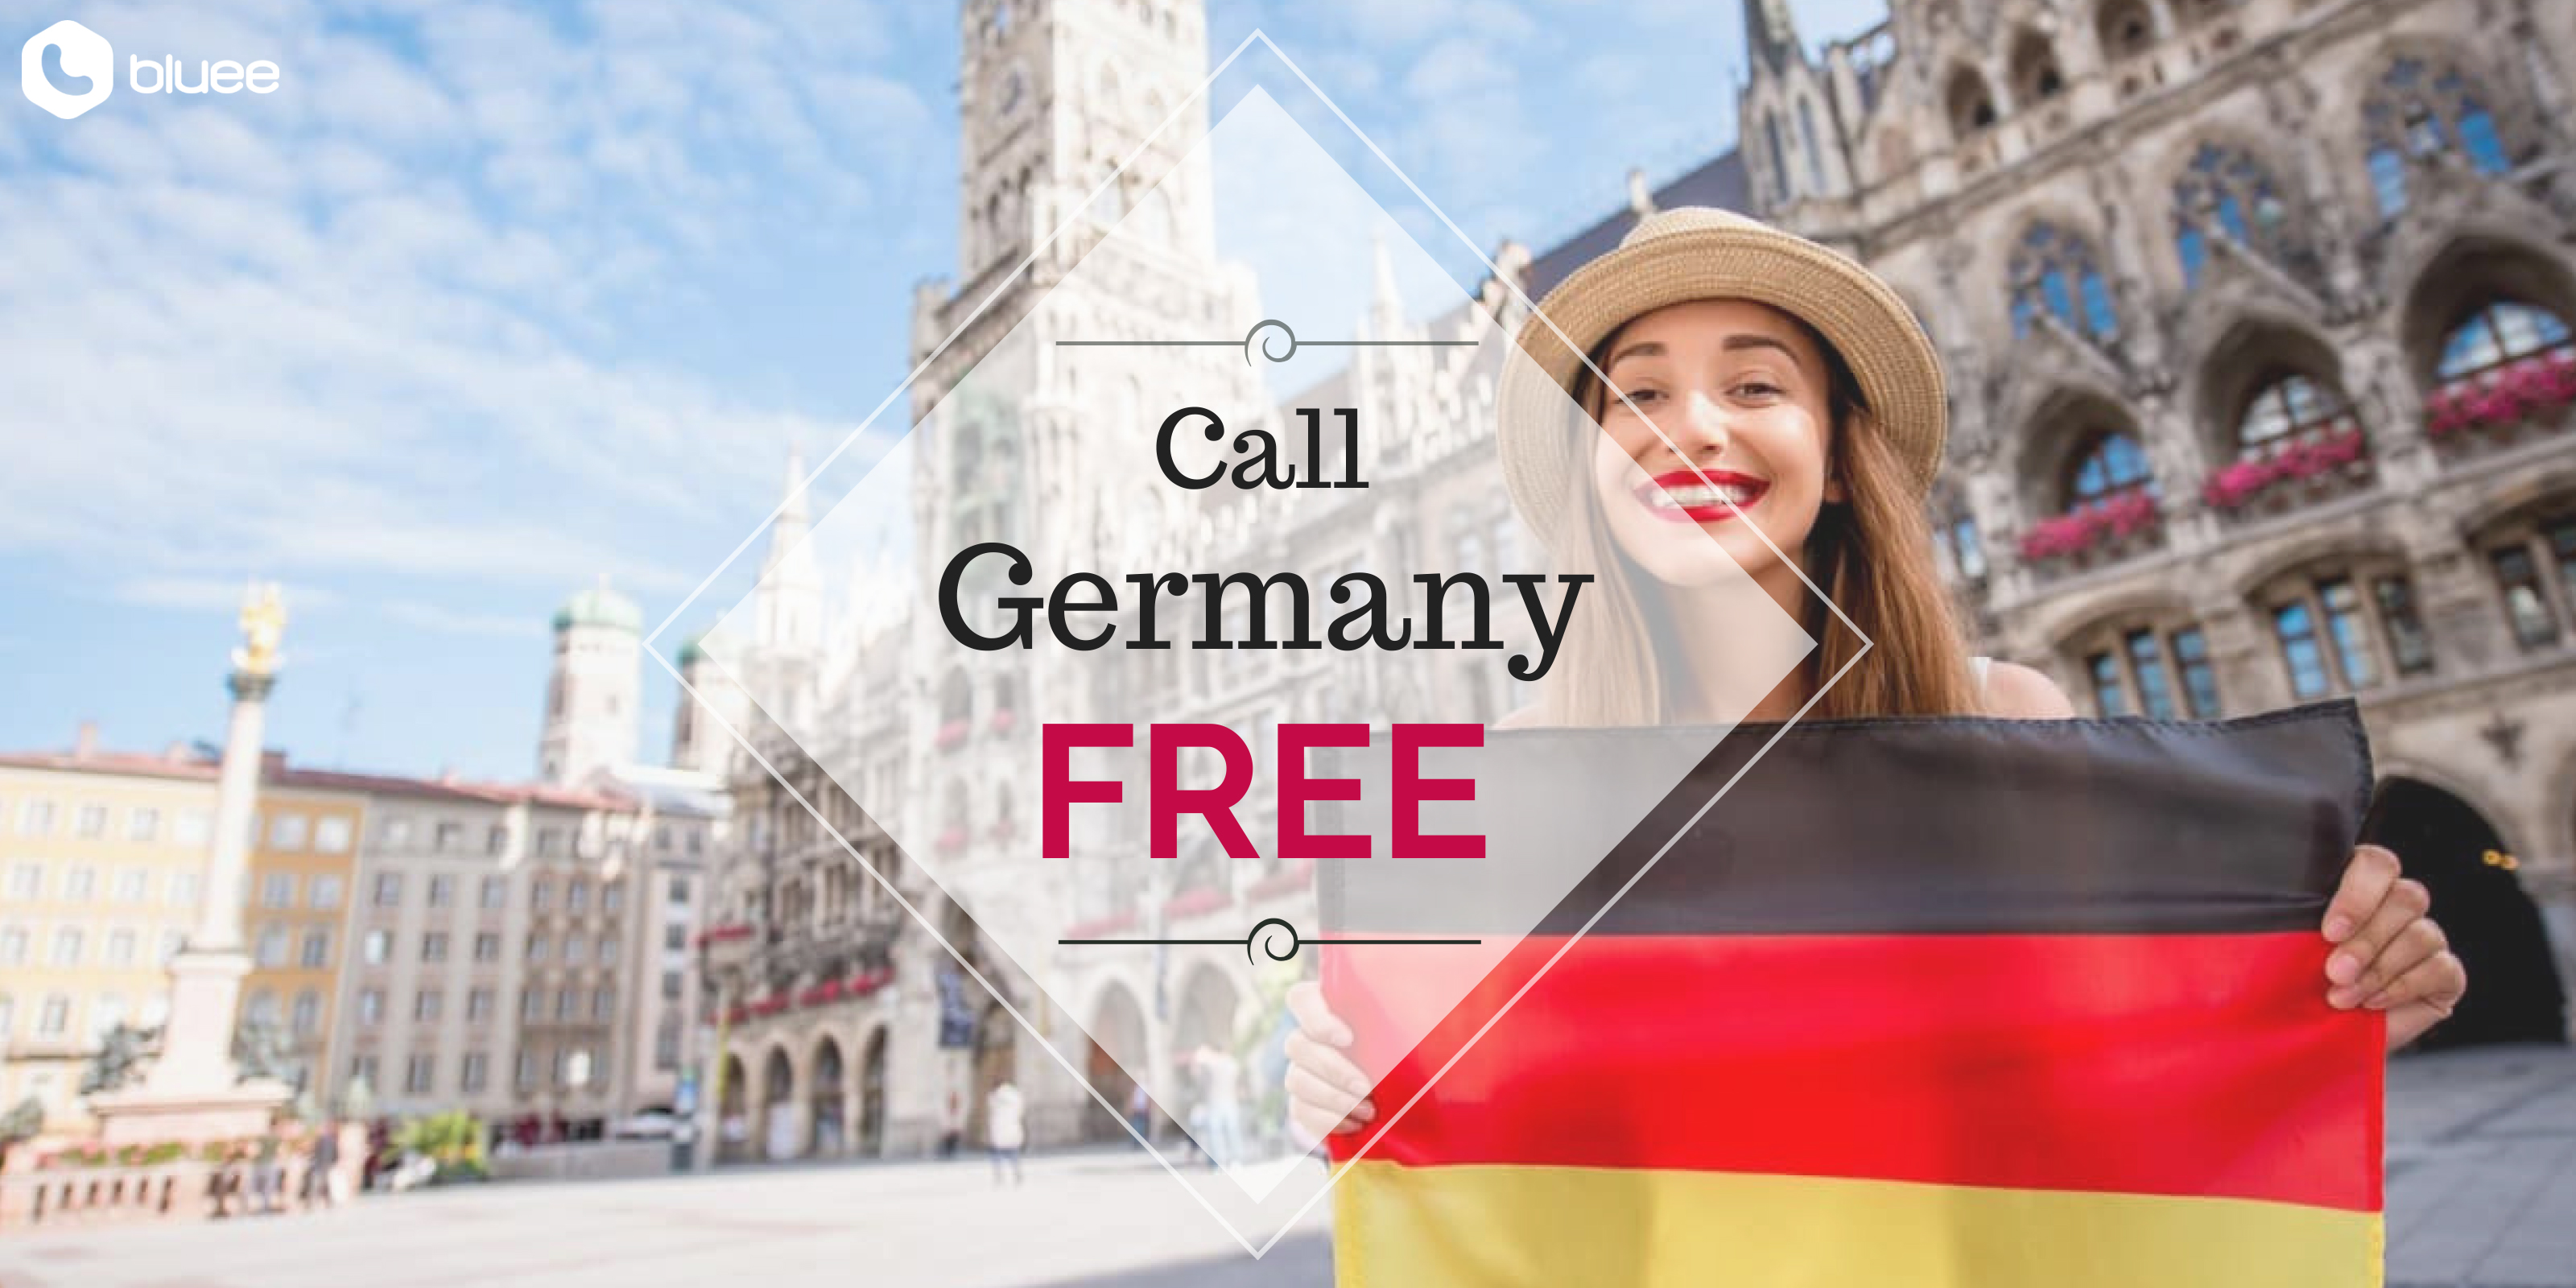 Free Friday: Call Germany For FREE